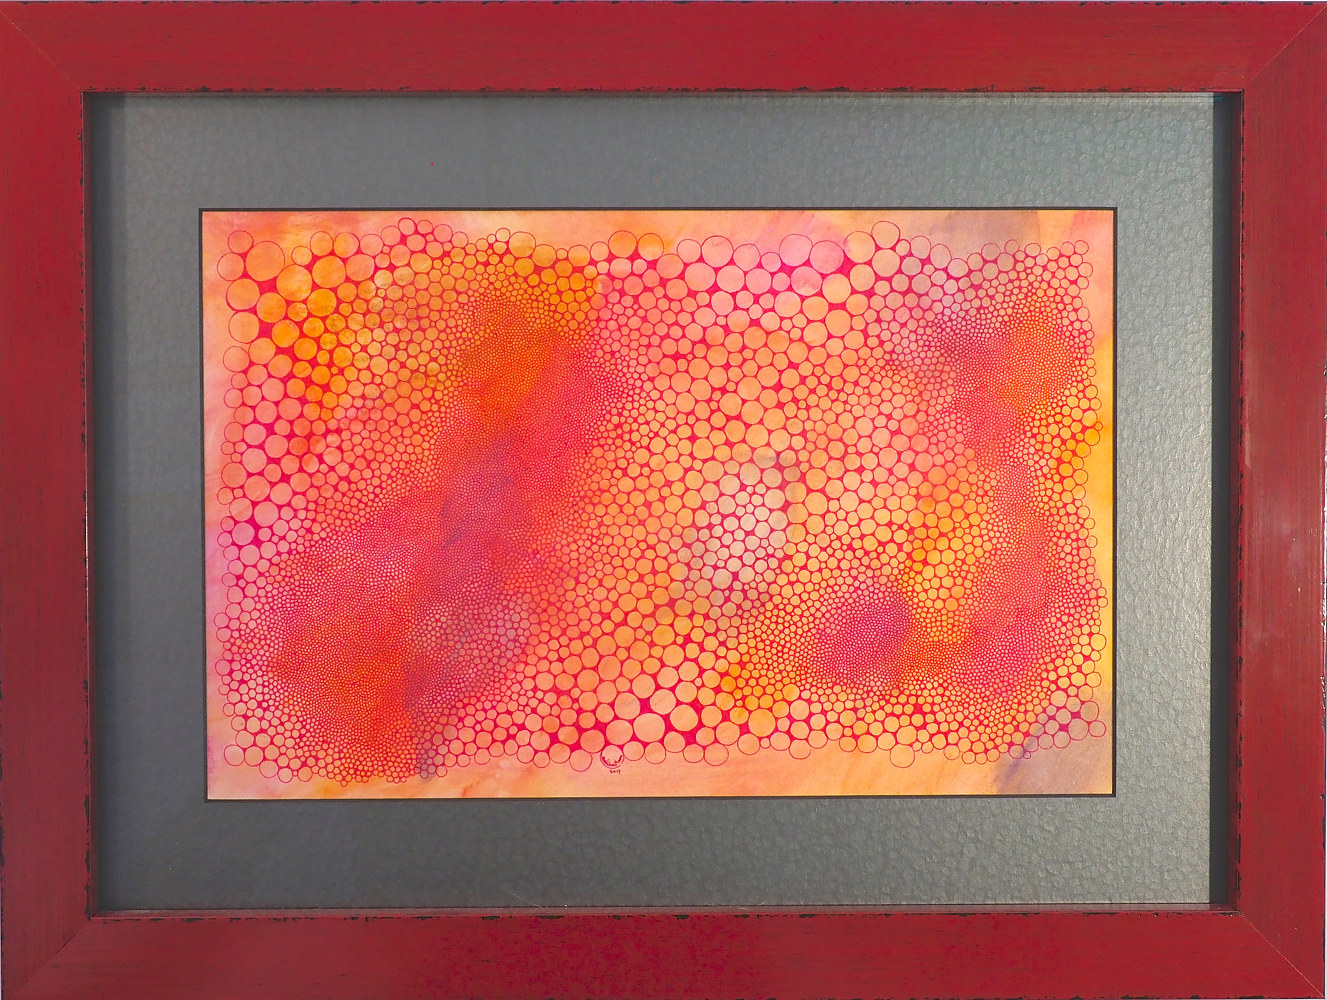 Red ink on orange water color pencil on matboard by Rainbow Moon